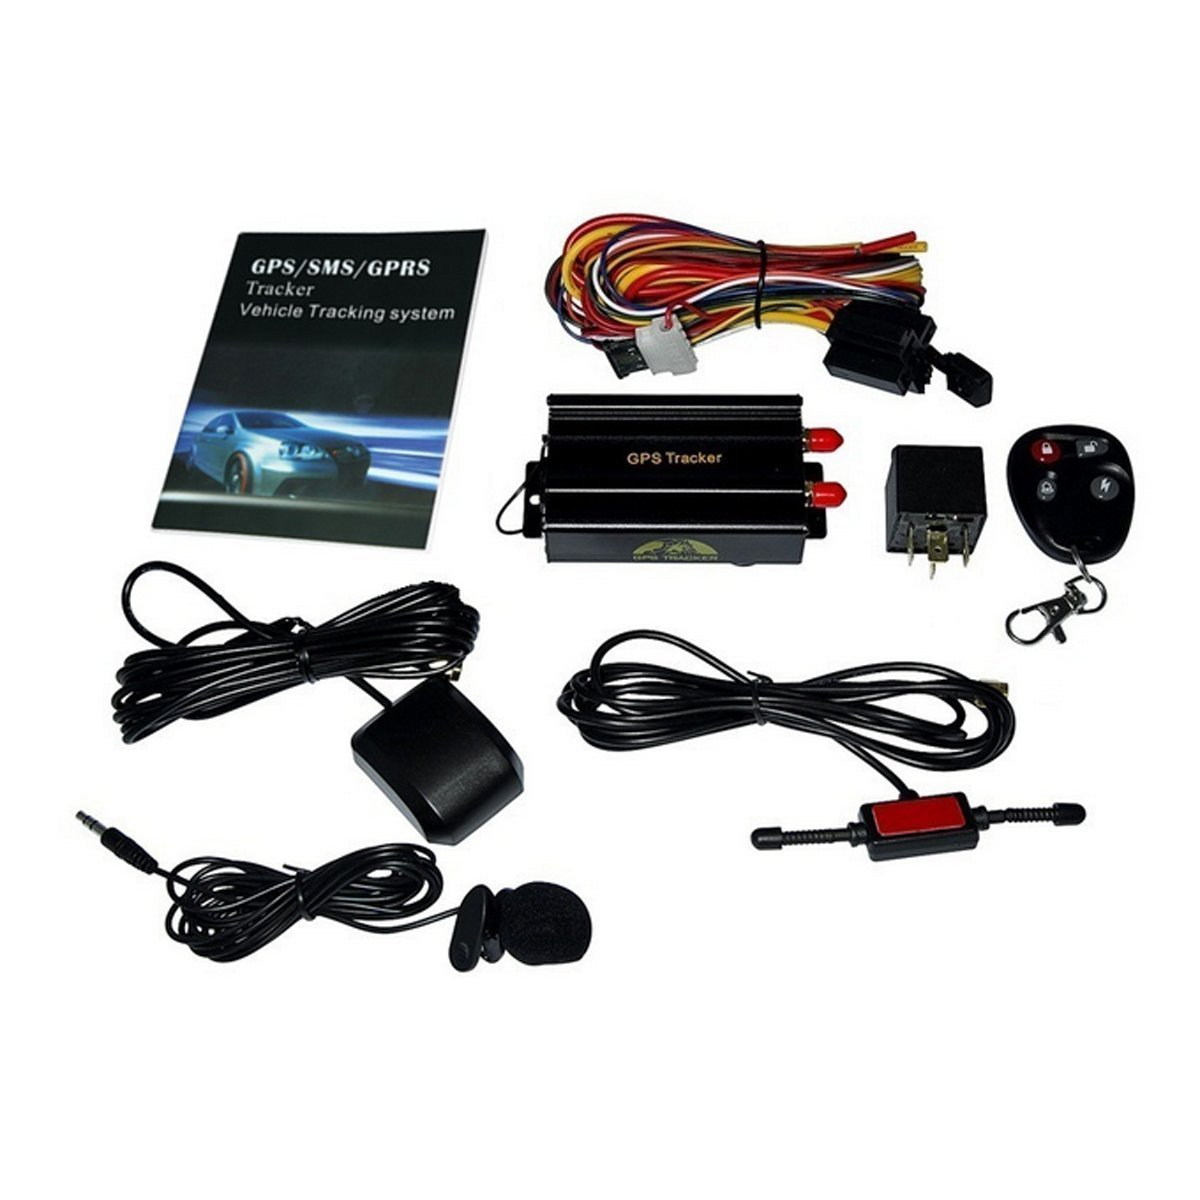 RedSun New GPS/SMS/GPRS Tracker TK103B Vehicle Tracking System With Remote Control